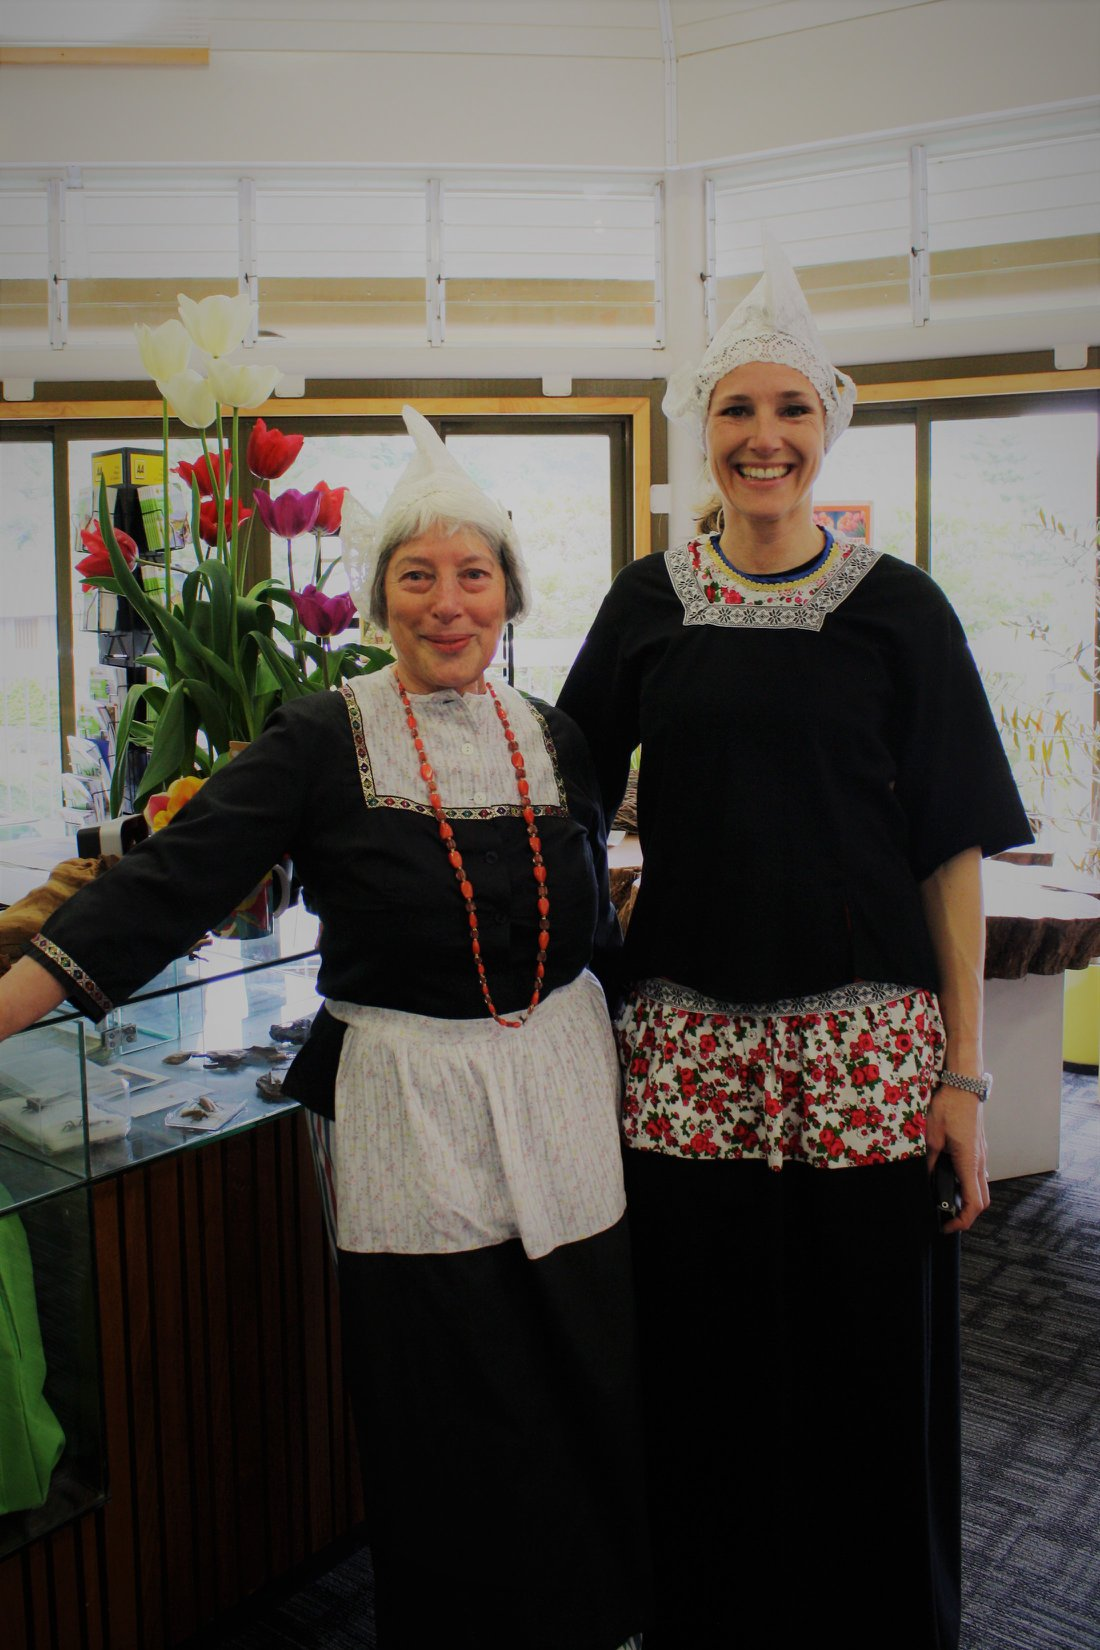 Tulip-sunday-dutch-traditional-dress